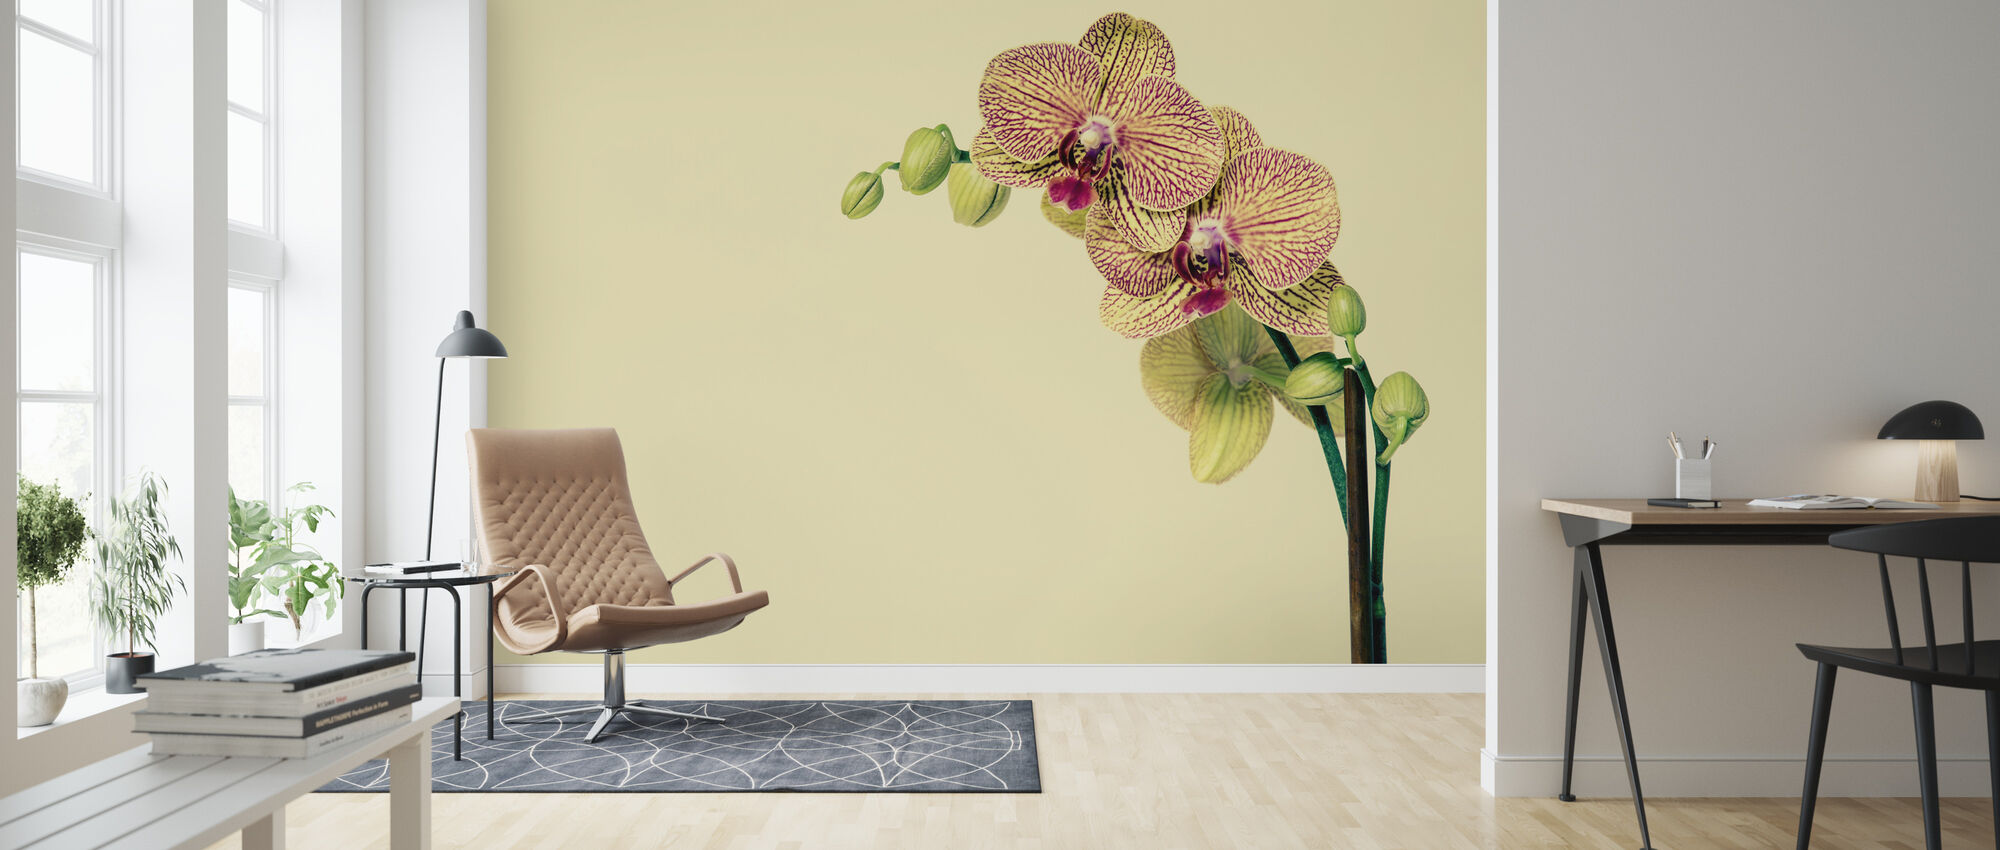 Pale Orchid - Wallpaper - Living Room